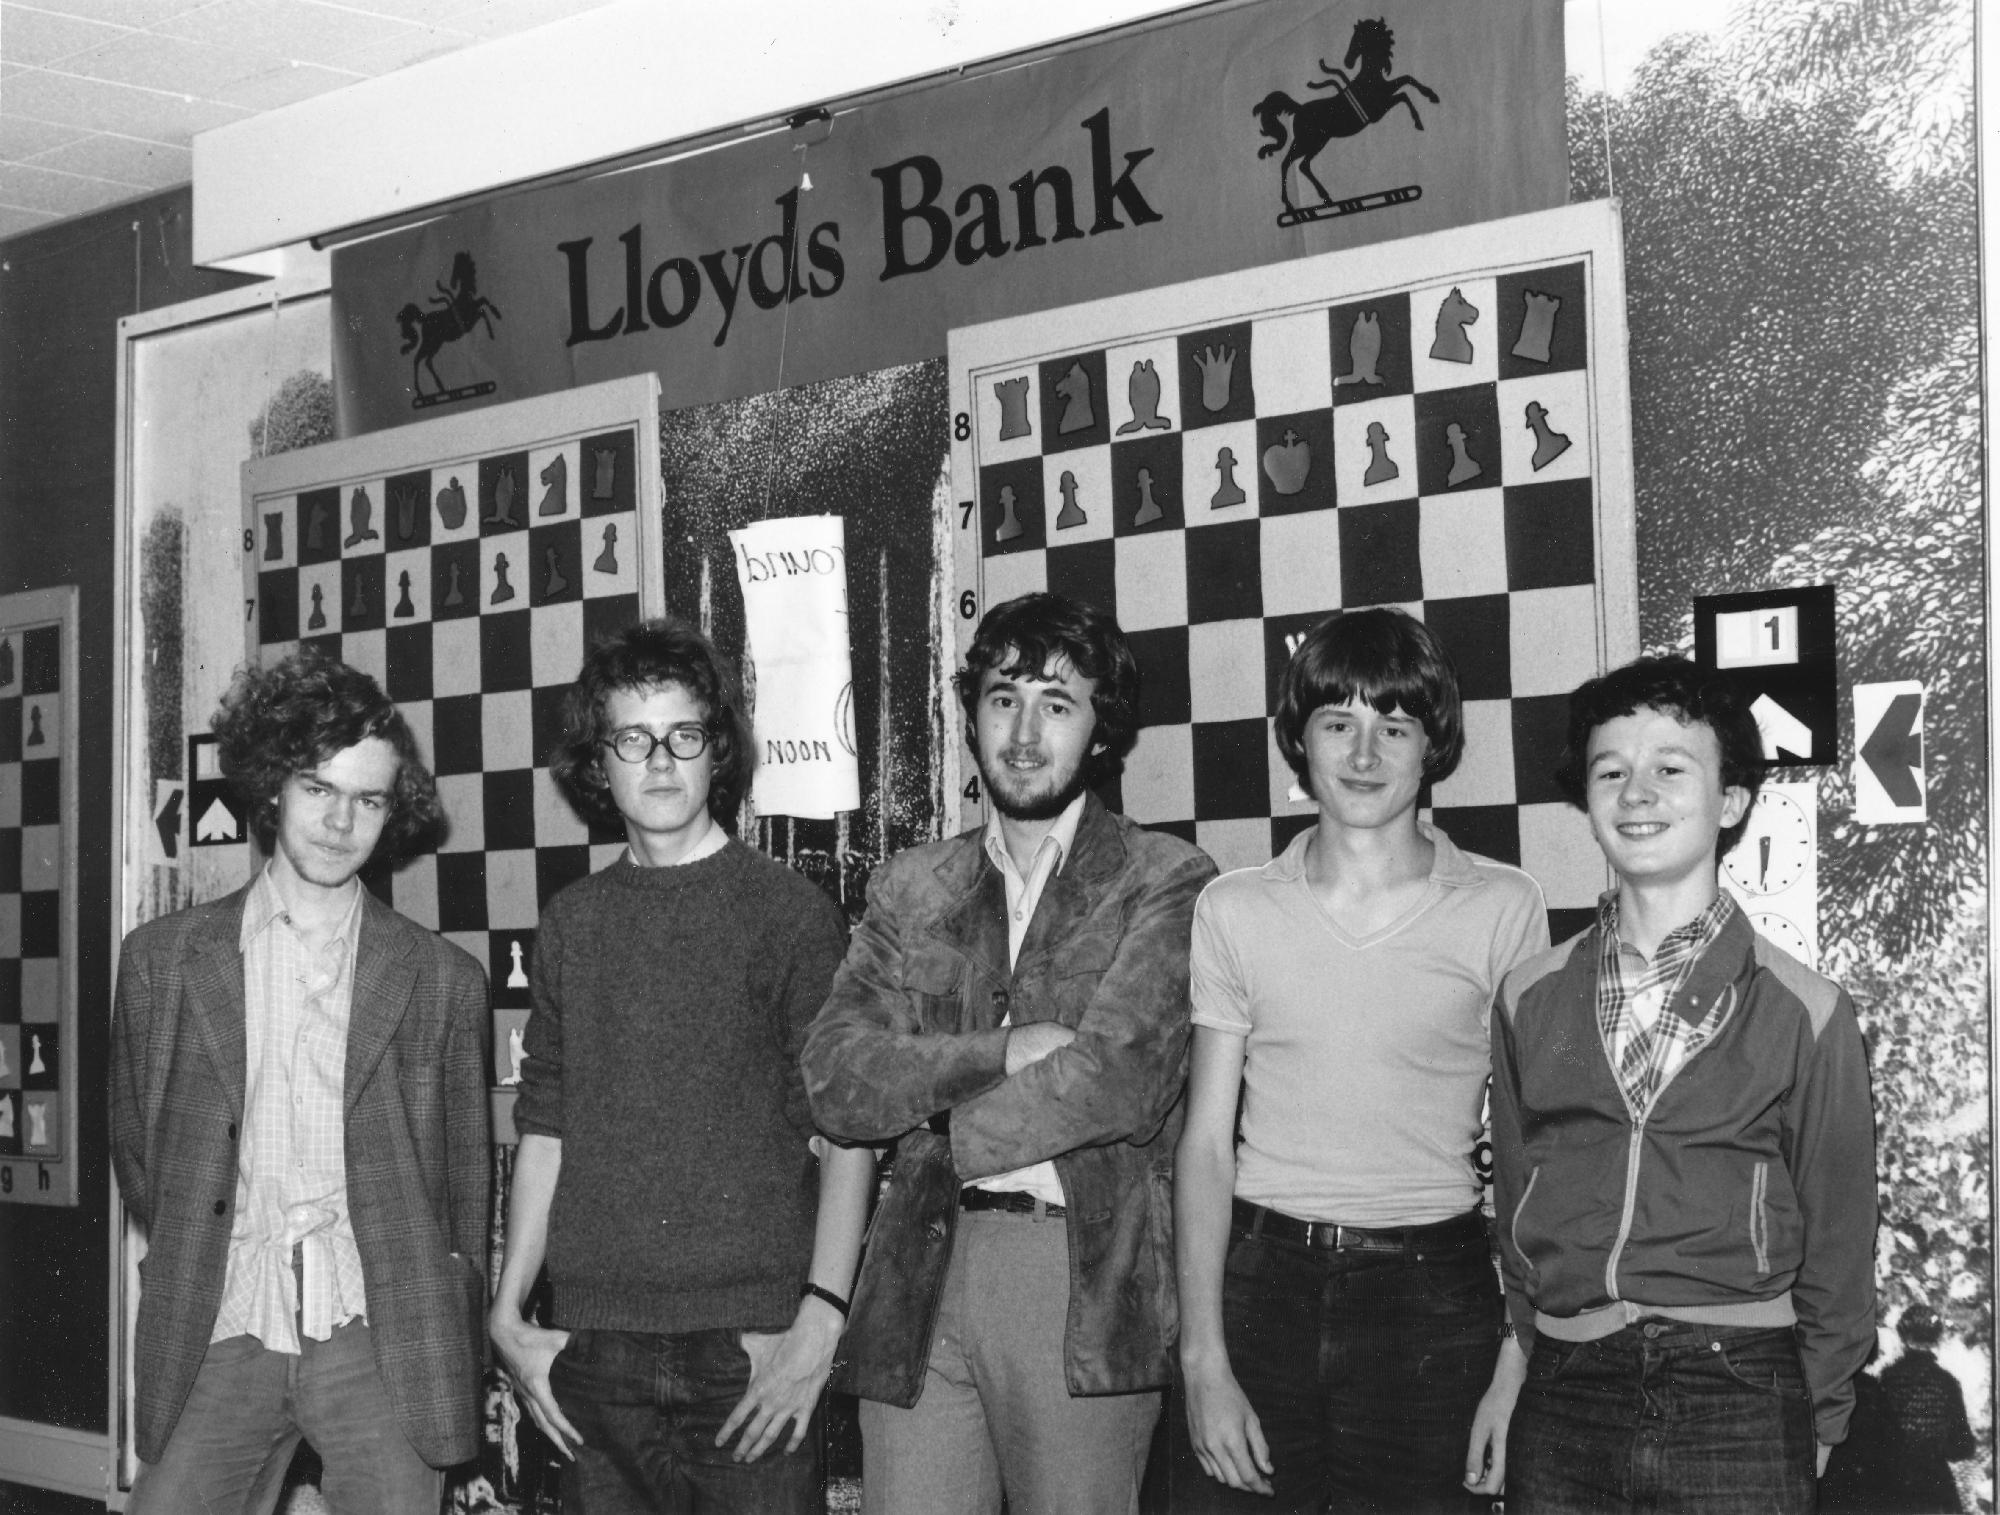 Peter Wells (second from right) at a Lloyds Bank event.